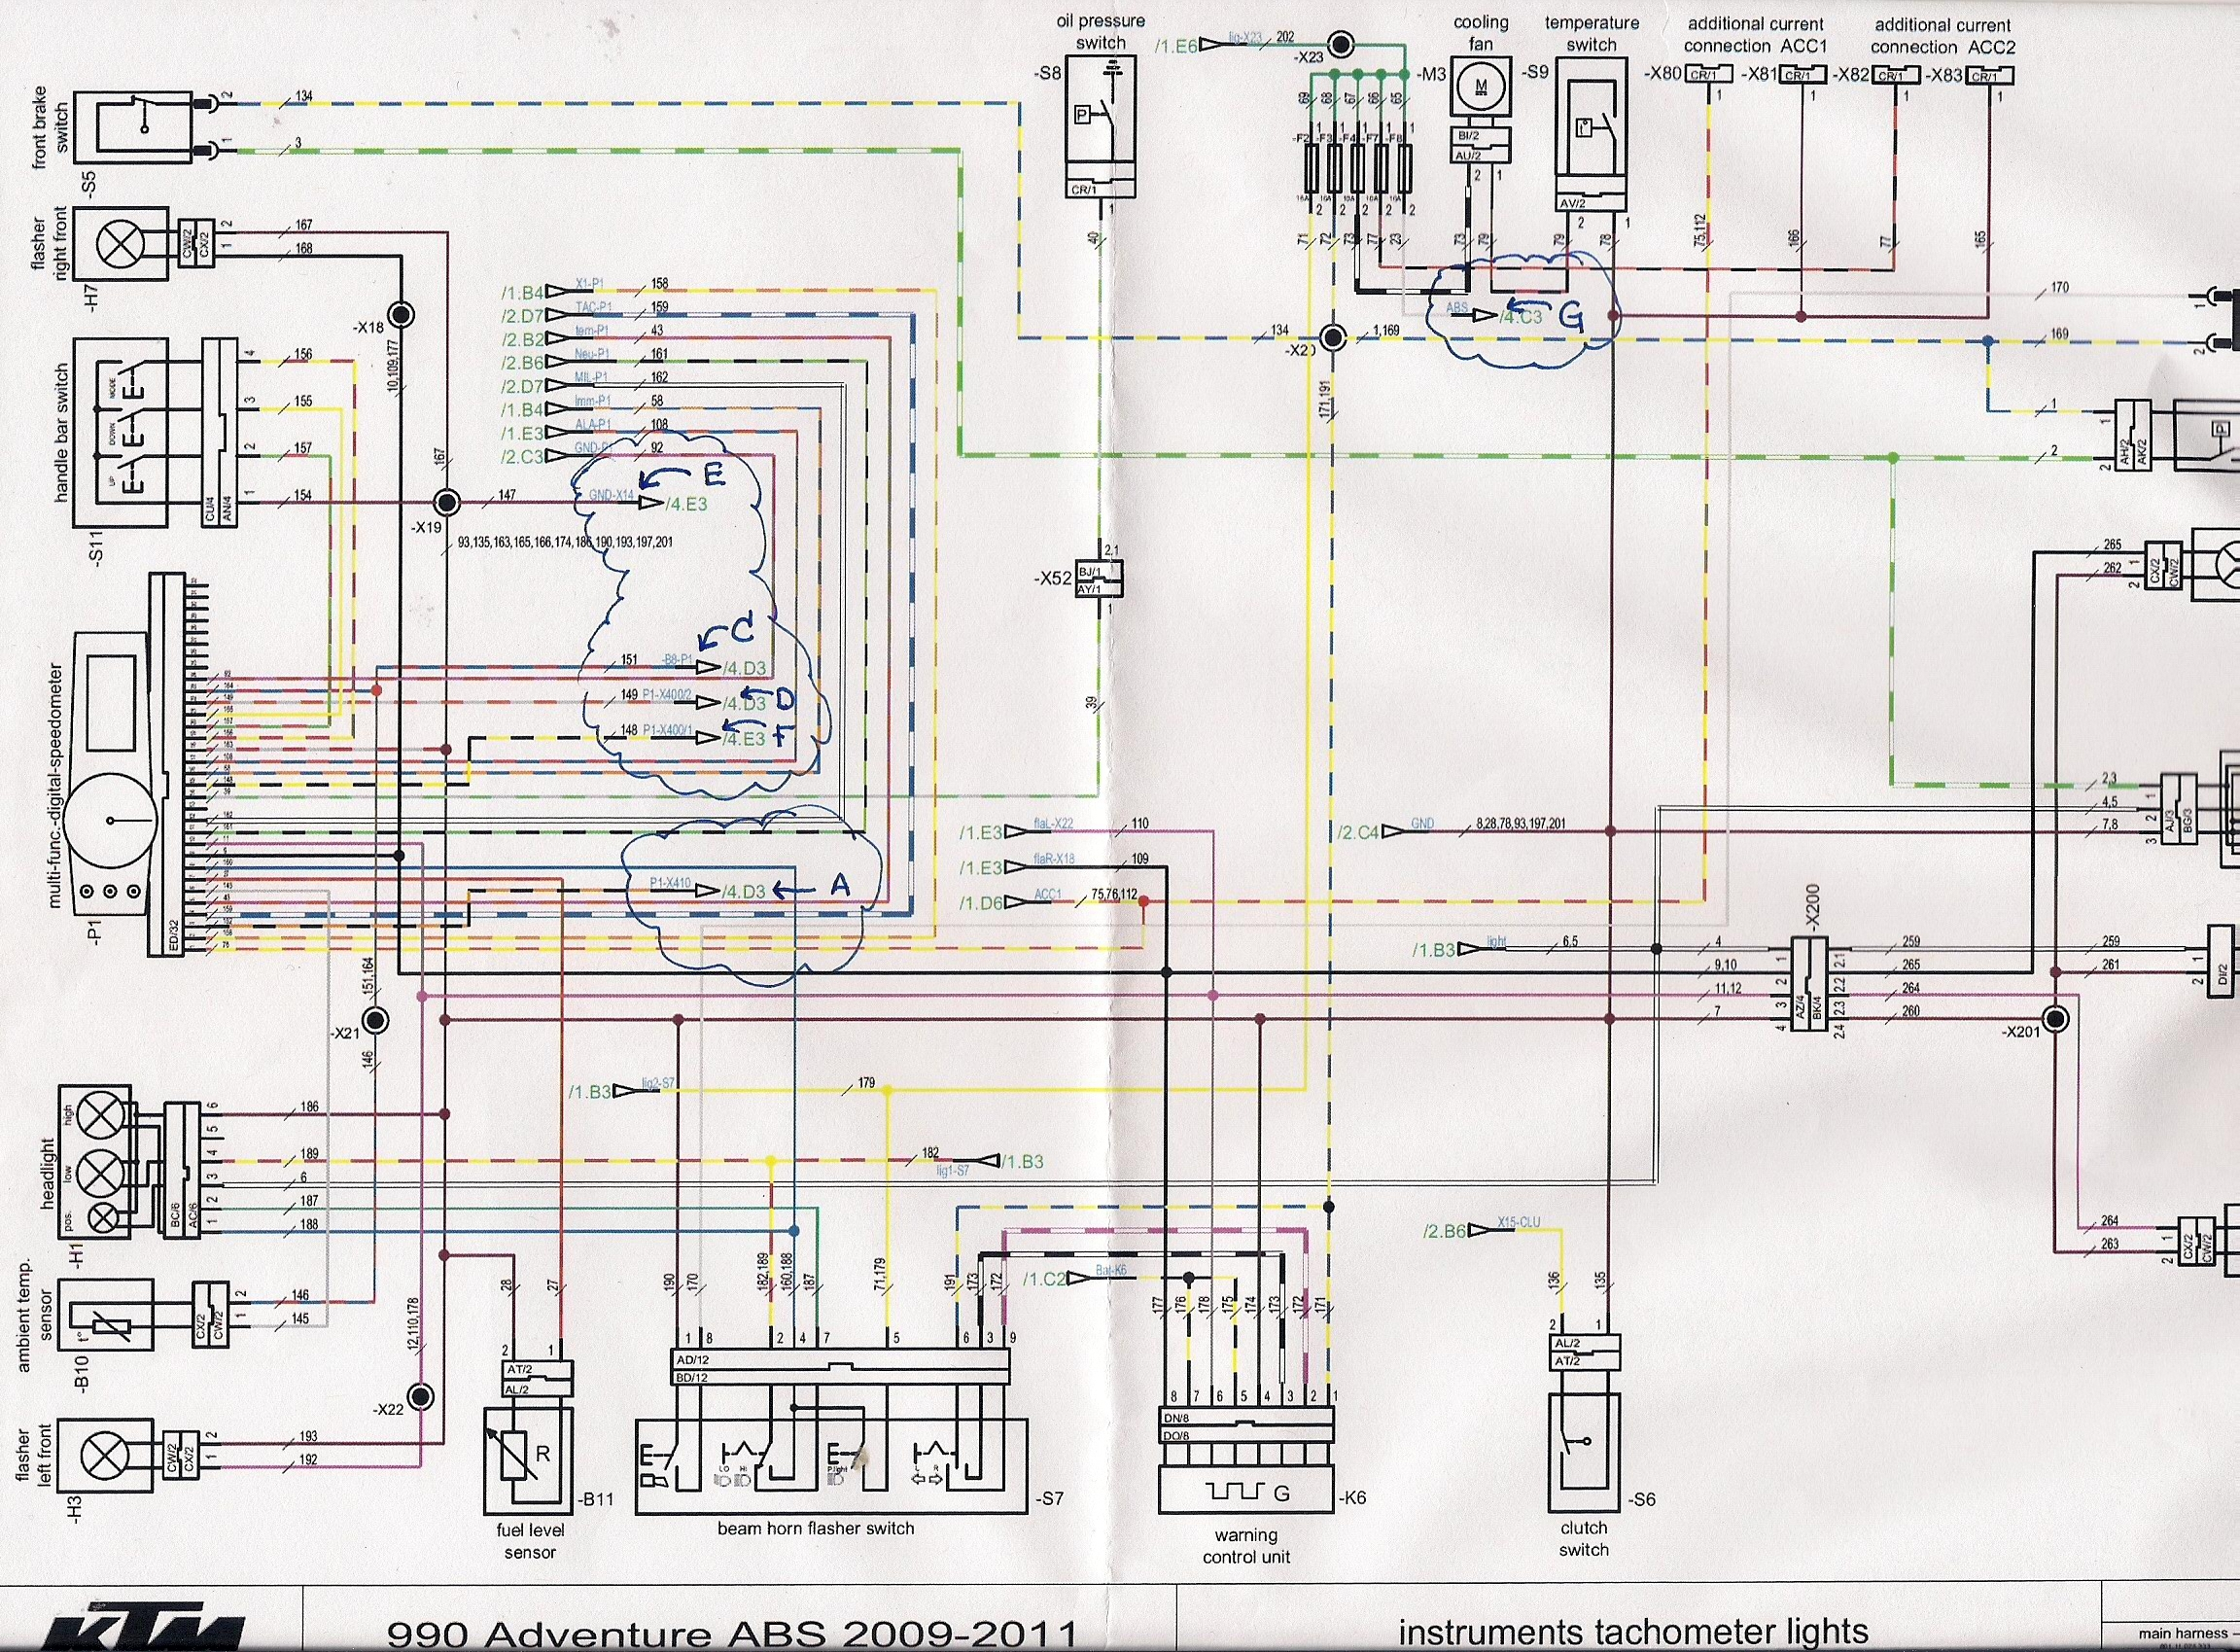 Wiring Diagram Ktm Duke 200 | Wiring Diagram on 2000 s10 seats, 2000 s10 thermostat, 2000 s10 abs wiring, 2000 s10 dash wiring, 2000 s10 radio, 2000 s10 headlights, 2000 s10 alternator wiring, 2000 s10 horn, 2000 s10 door, s10 engine diagram, 2000 s10 volvo, 2000 s10 brake system, 2000 s10 flywheel, 2000 s10 dash vents, 2000 s10 ignition, 2000 s10 manual, 2000 s10 hose, 2002 pontiac sunfire radiator hose diagram, 2000 s10 body, 2000 s10 firing order,